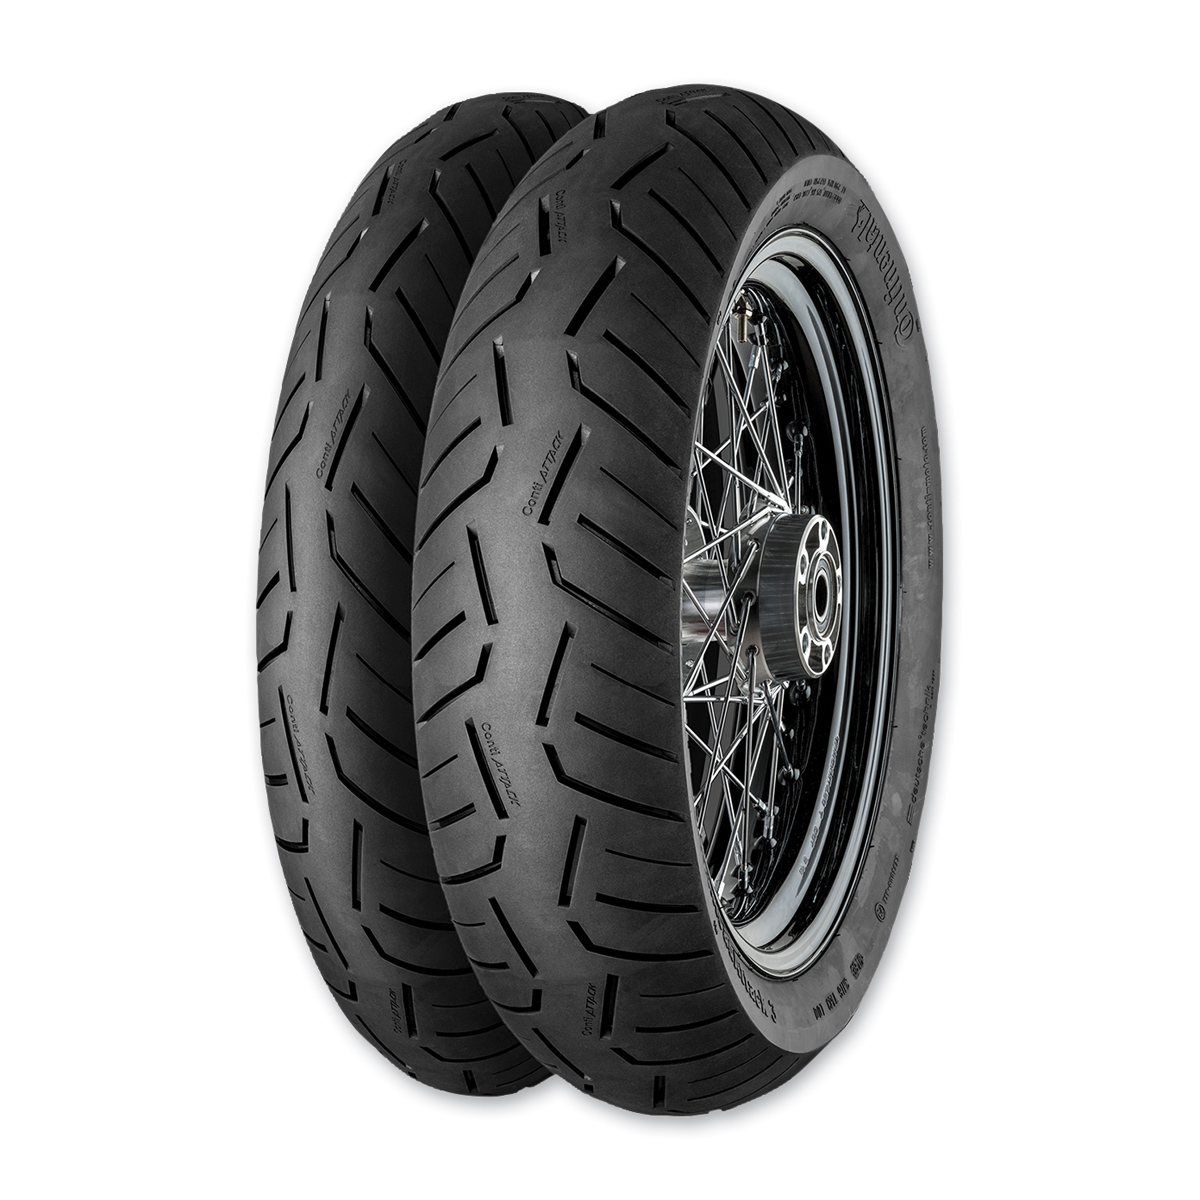 Continental Road Attack 3 110/70ZR17 Front Tire